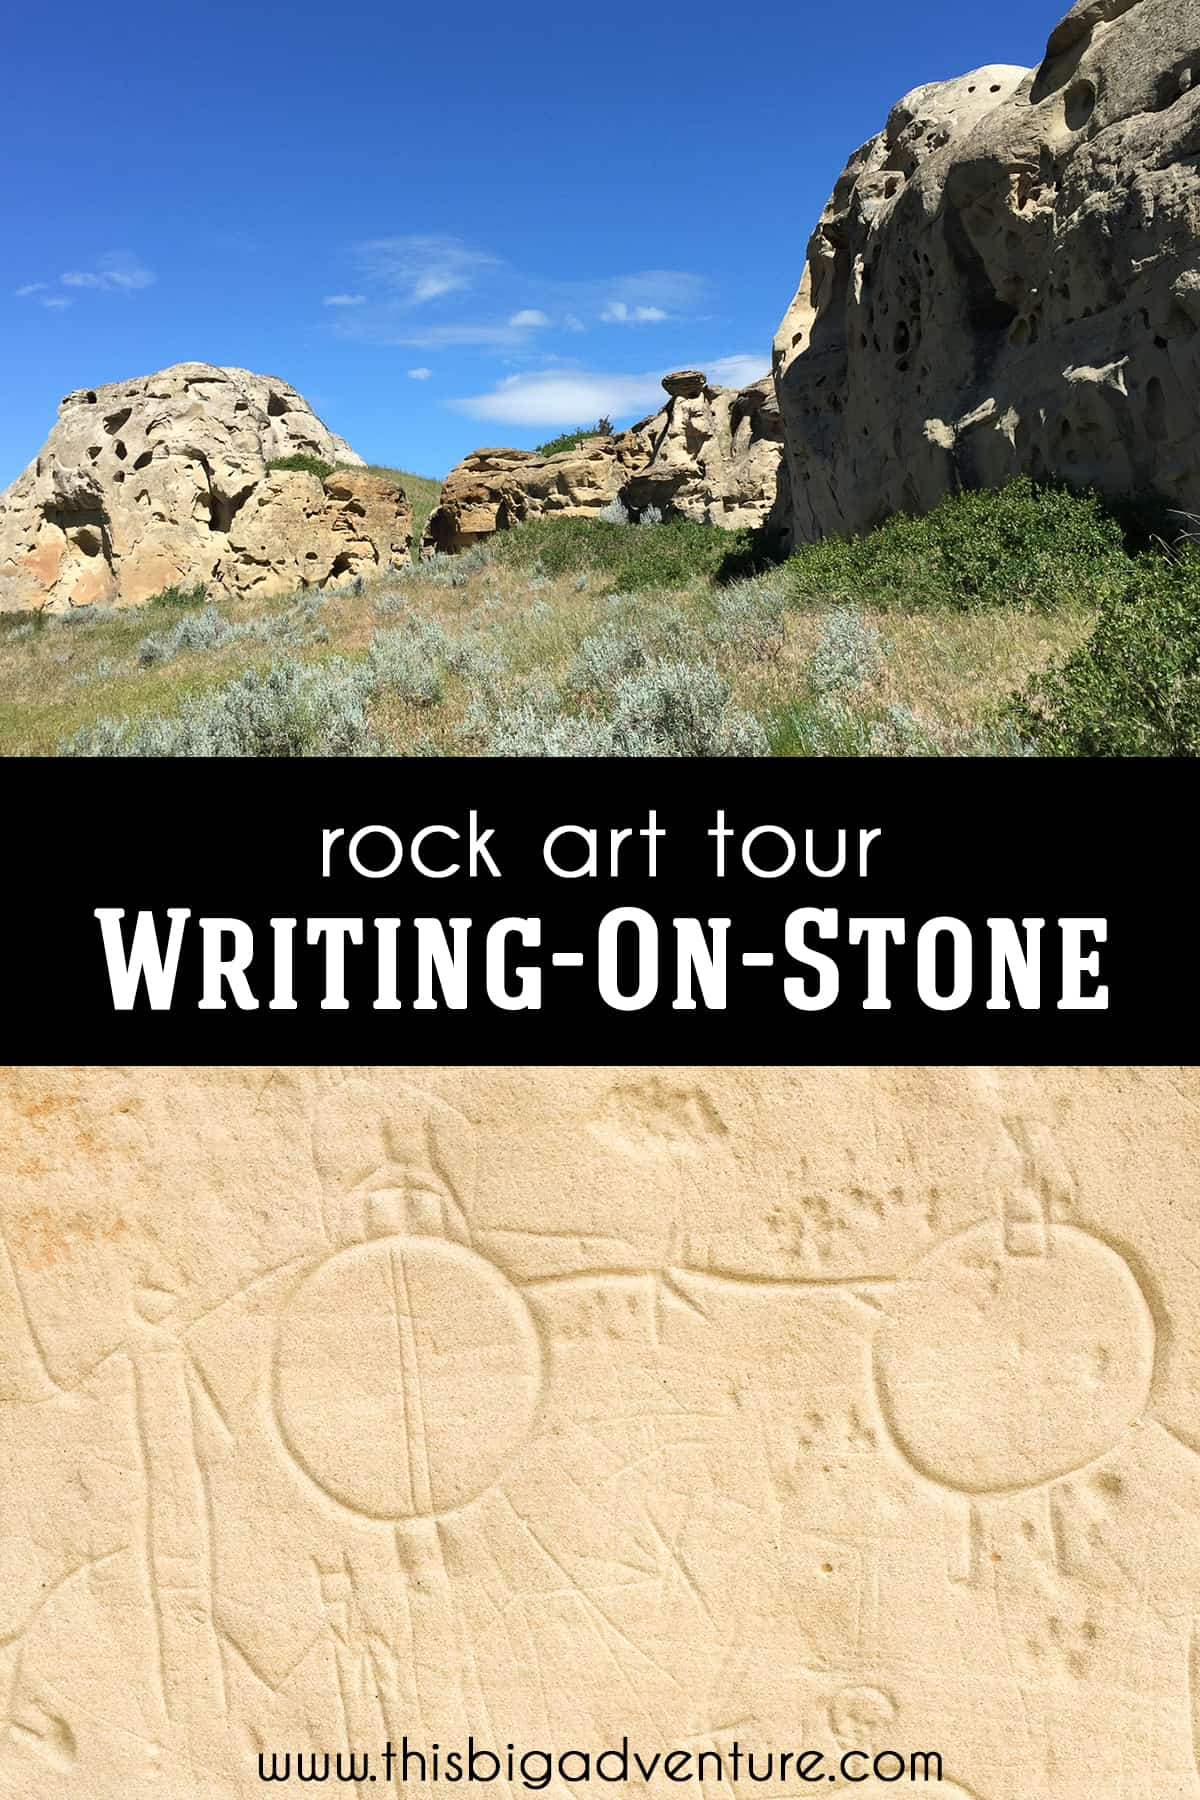 Rock Art Tour in Writing-on-Stone Provincial Park